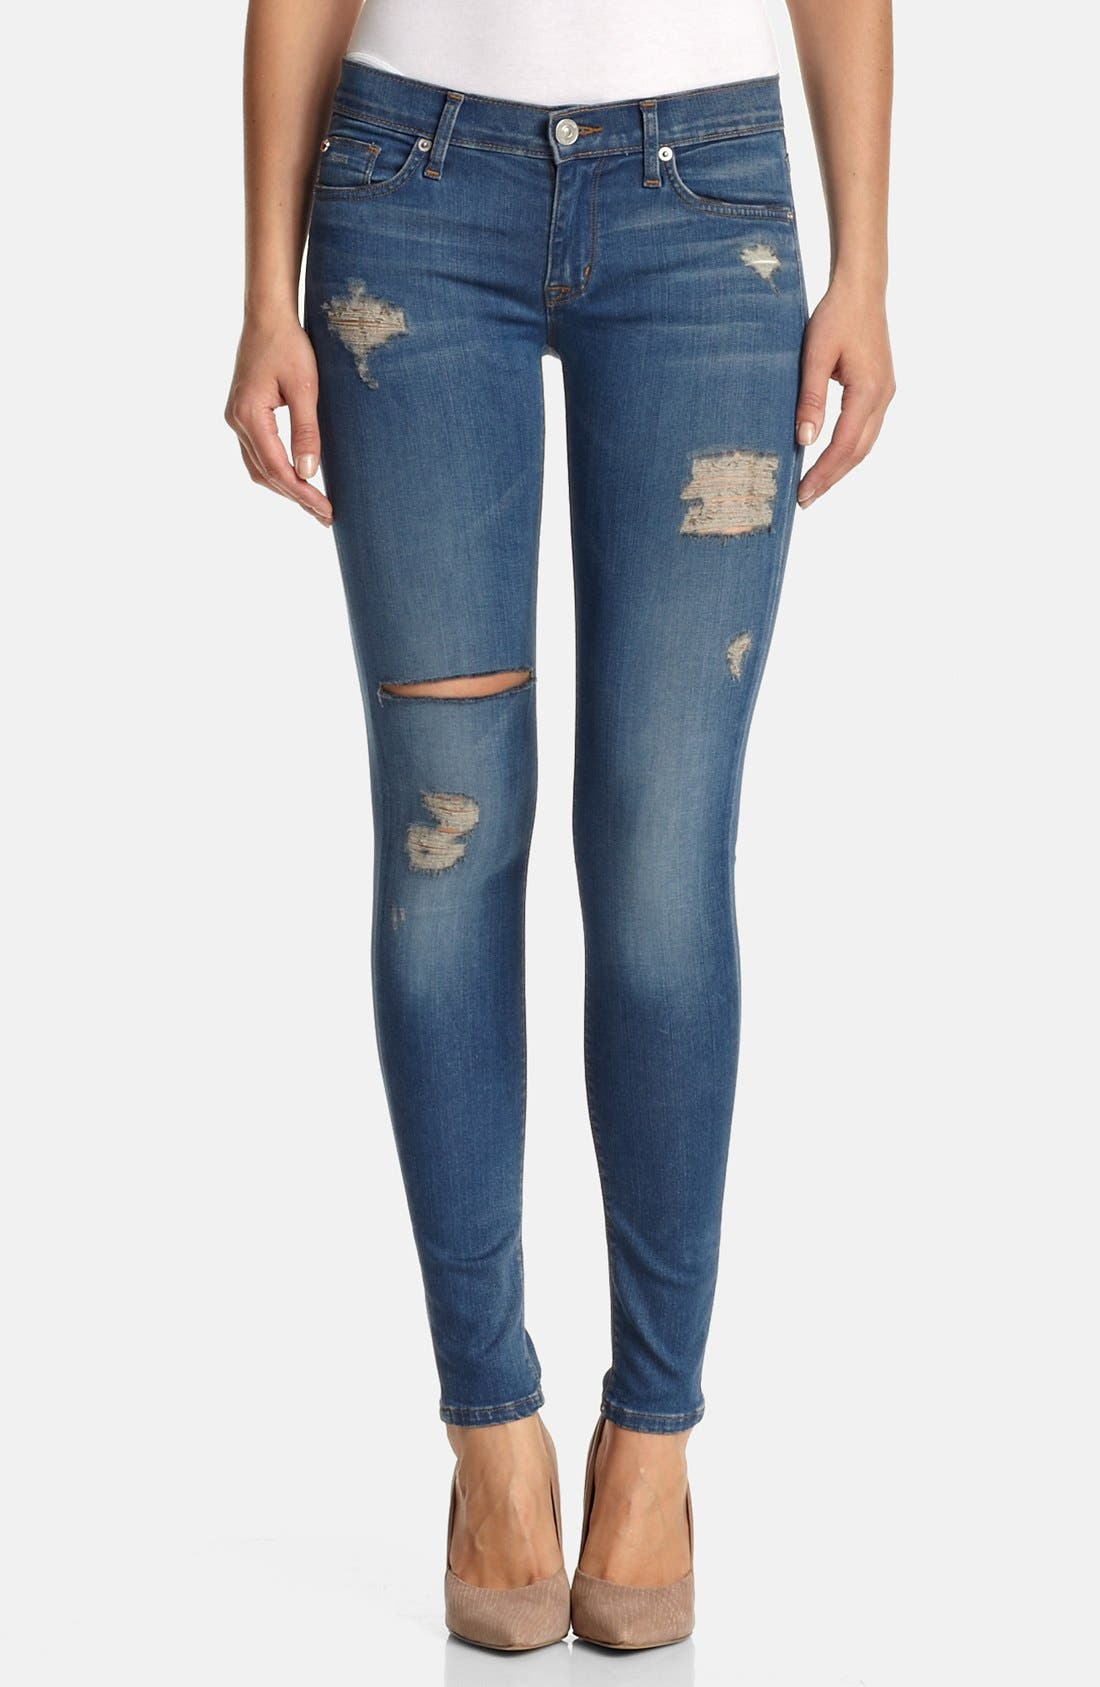 Alternate Image 1 Selected - Hudson Jeans 'Krista' Super Skinny Jeans (Foxey)